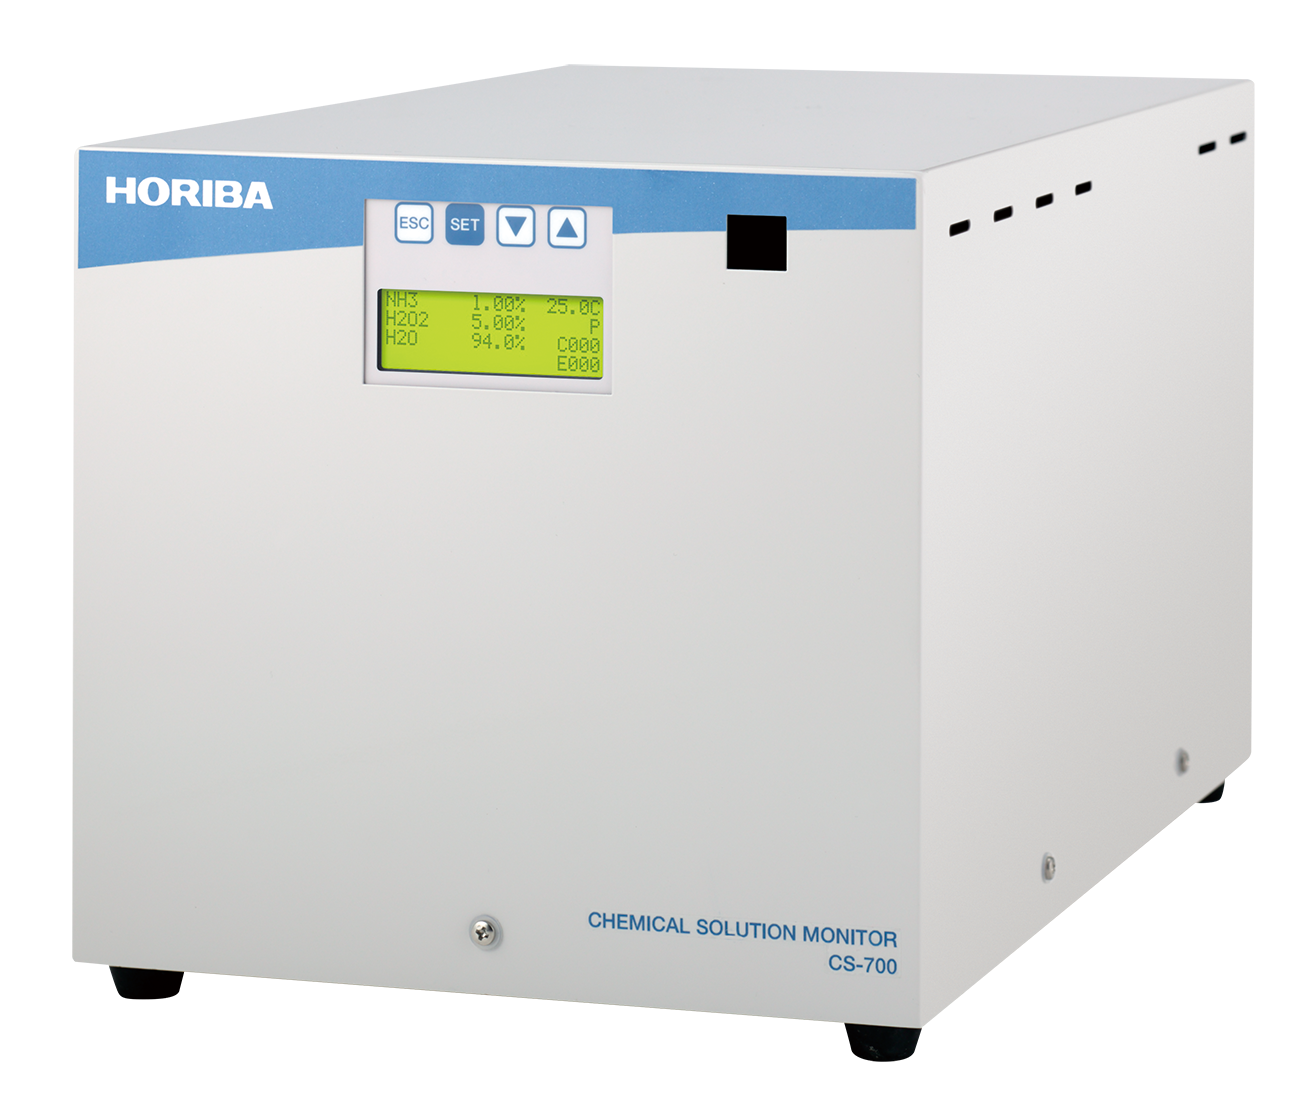 High Precision, High Stability Chemical Concentration Monitor CS-700